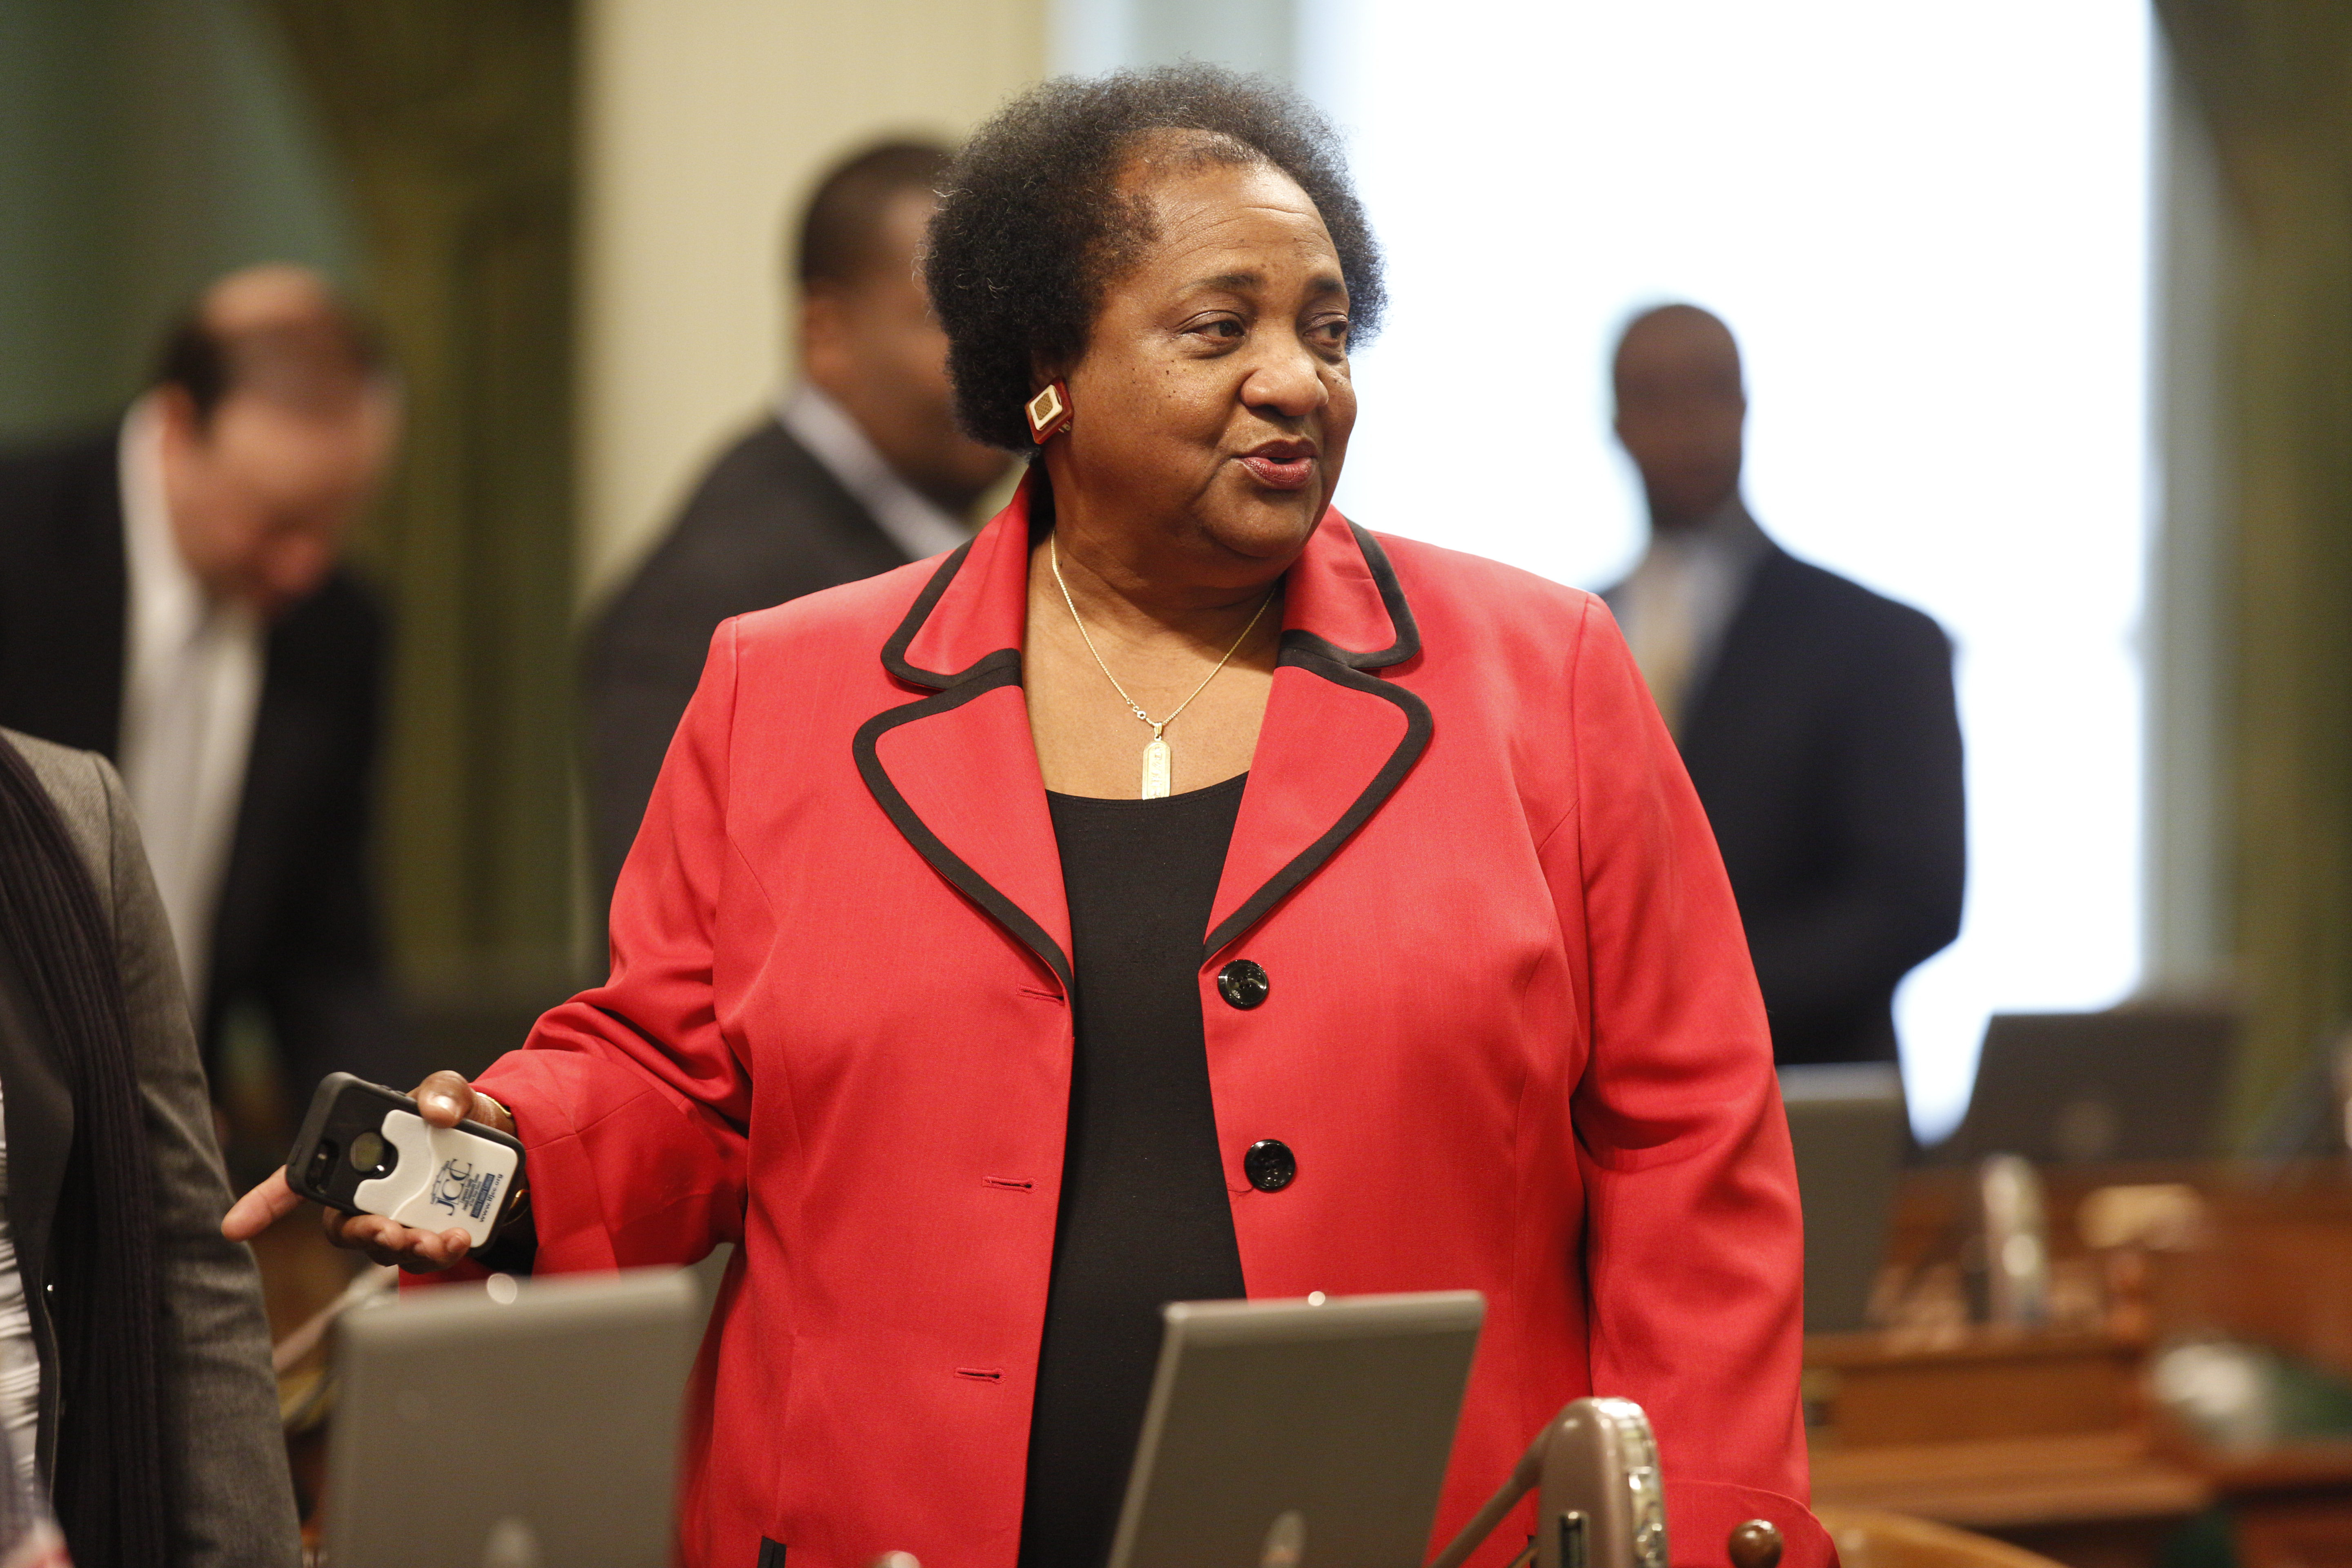 Shirley Weber at the California Assembly's most recent swearing-in ceremony. Photo by Steve Yeater for CALmatters